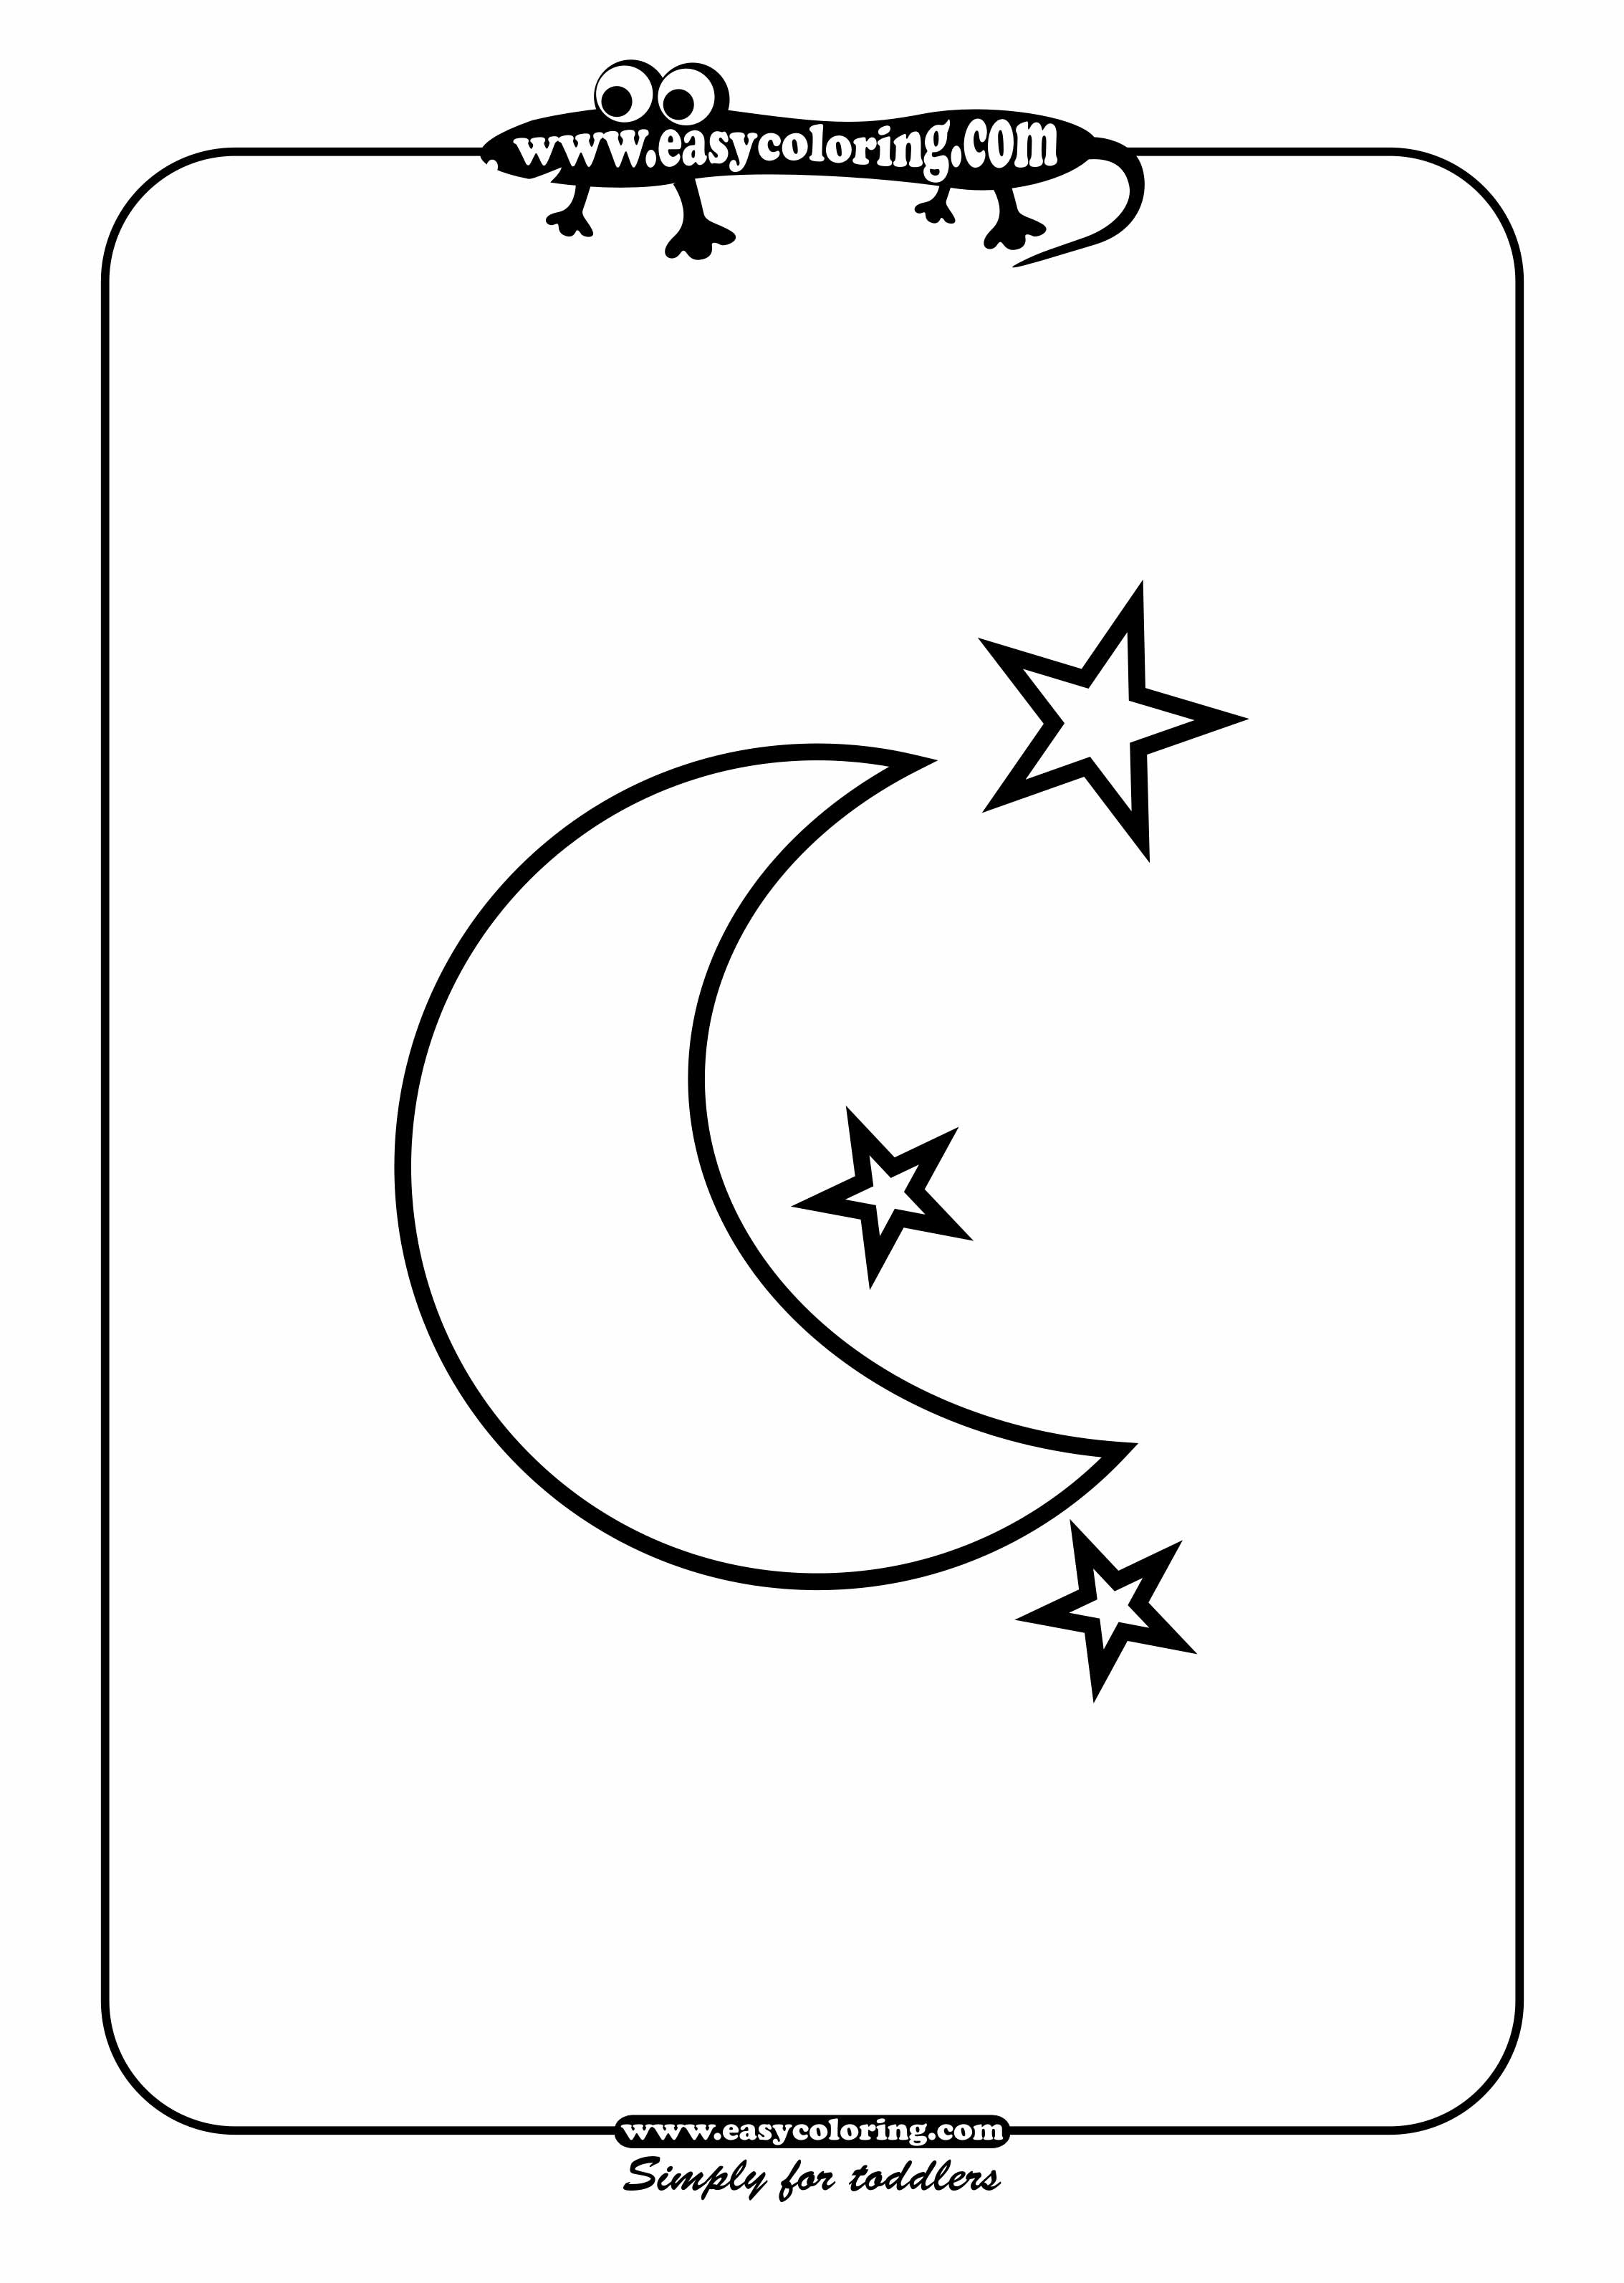 Moon and stars Simple shapes Easy coloring pages for toddlers